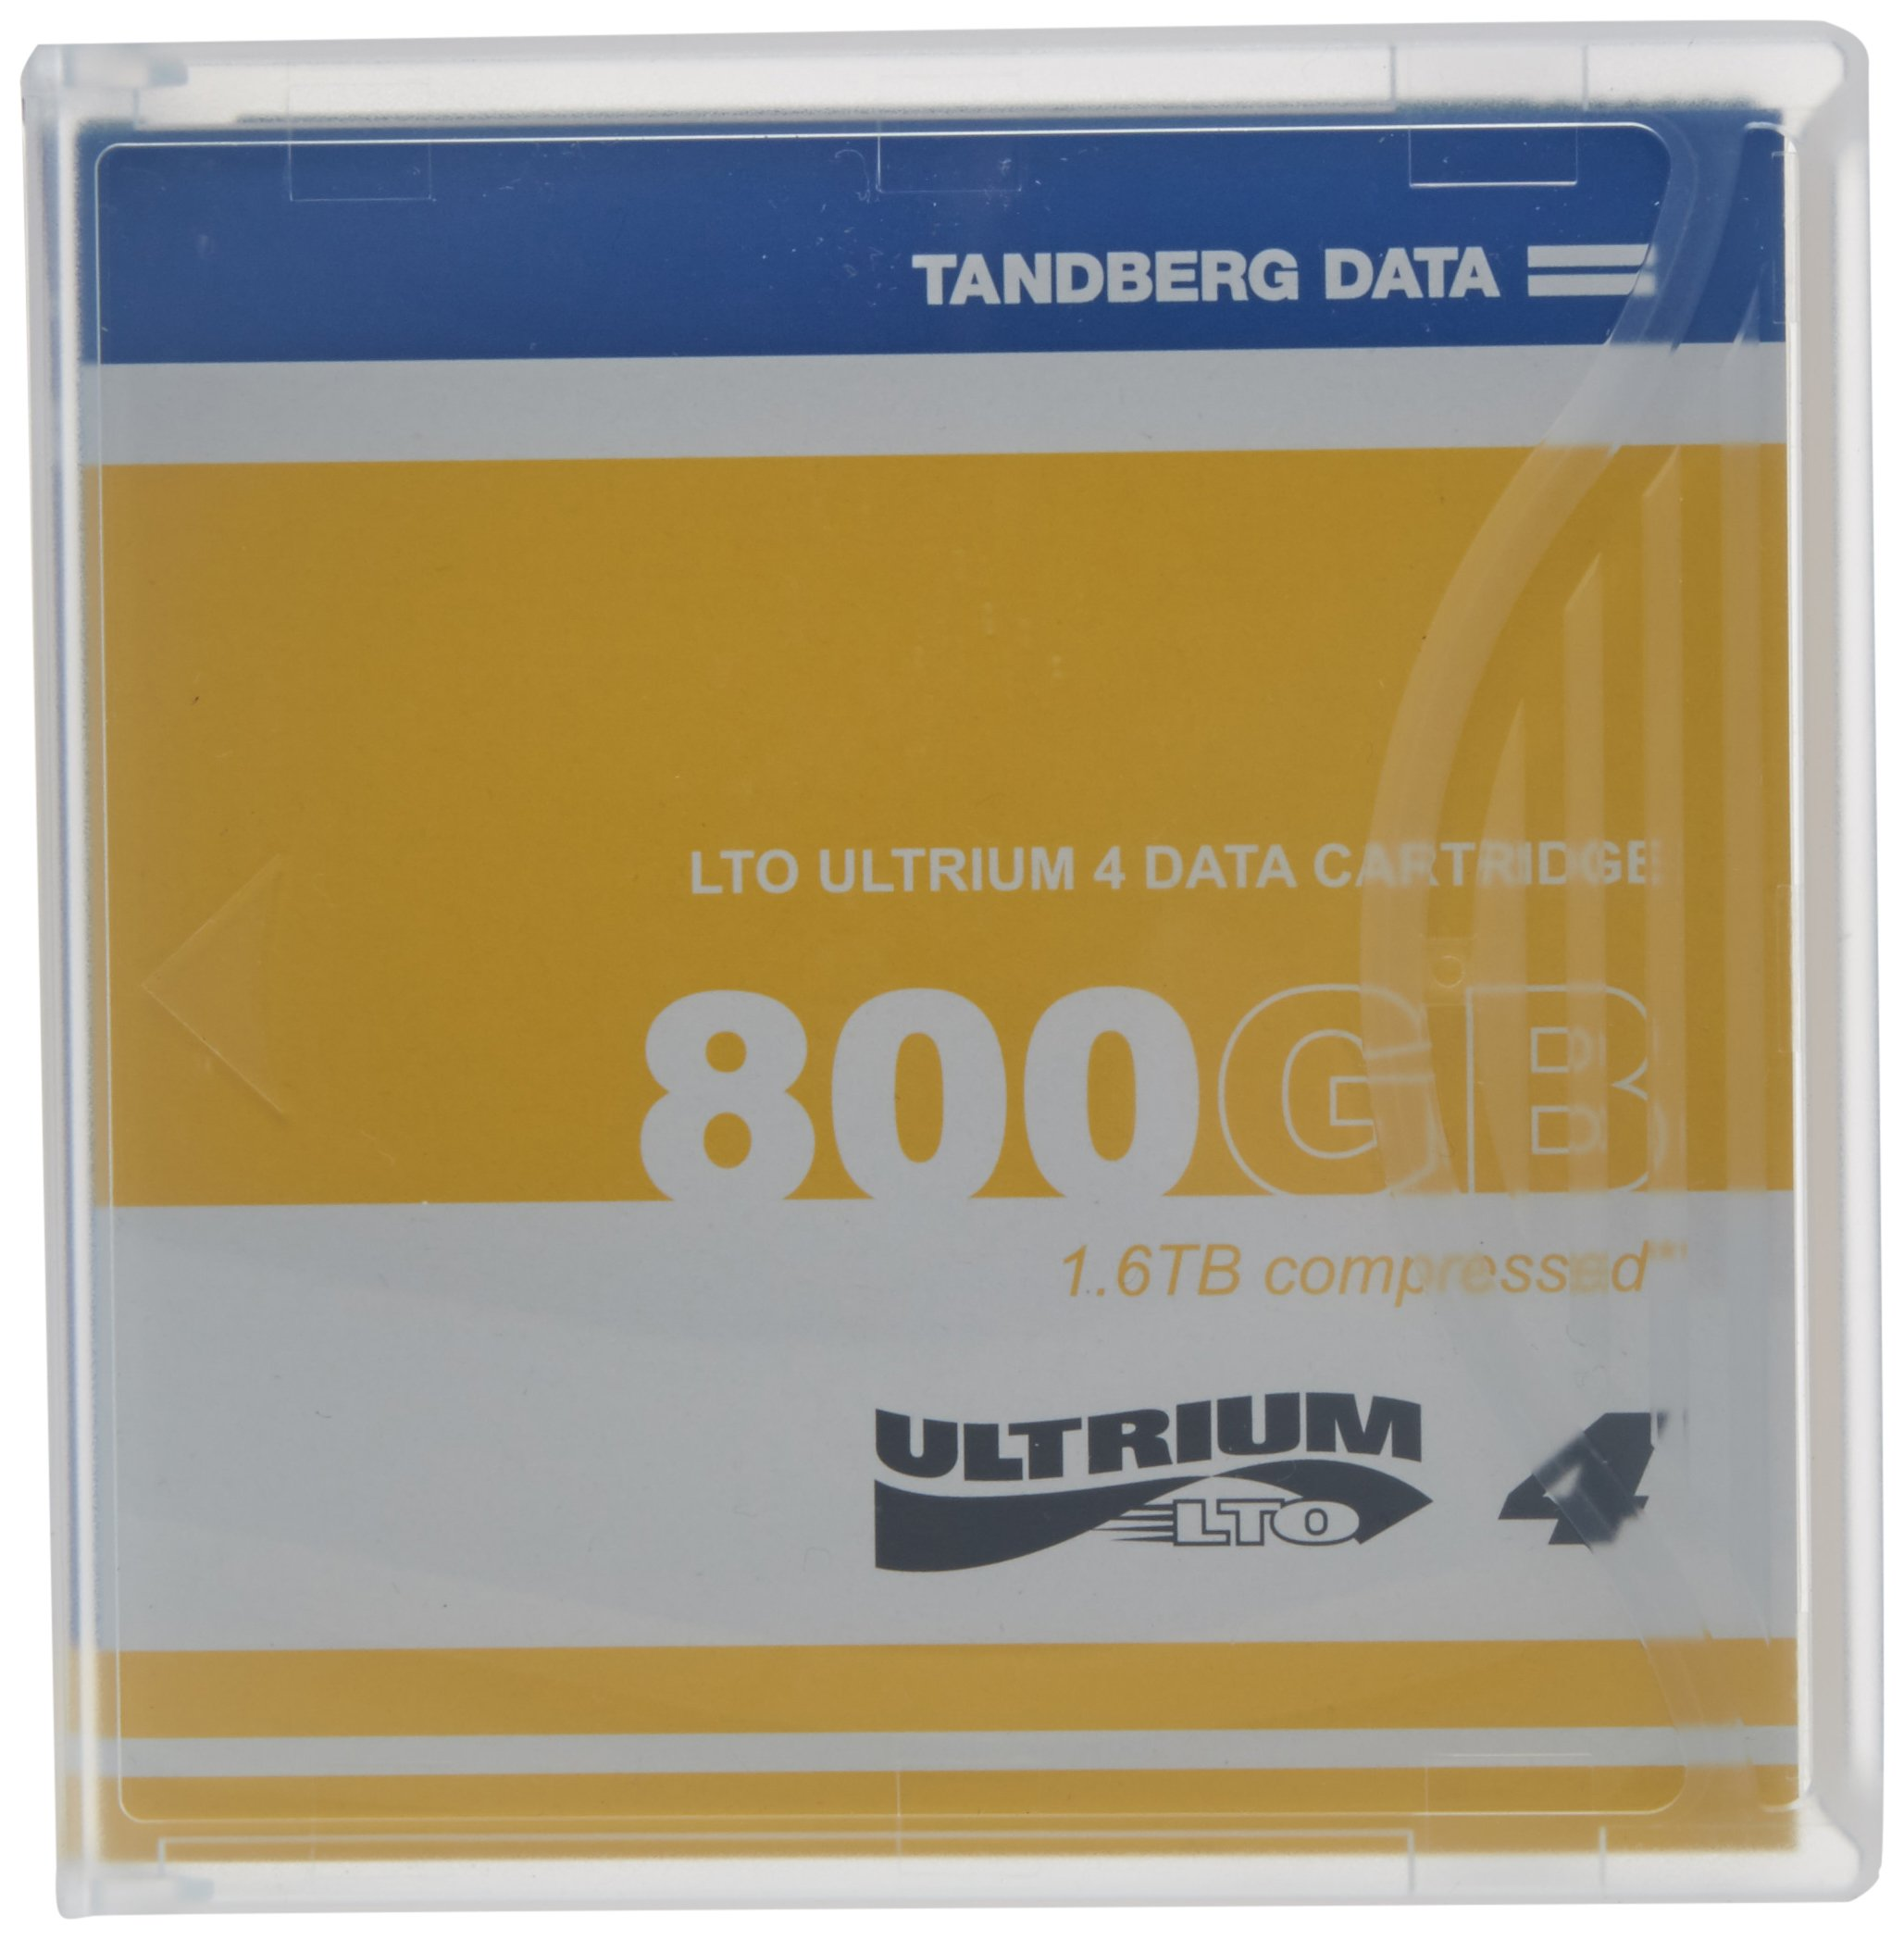 TANDBERG DATA LTO Ultrium 4 Storage Media Tape Cartridge (433781)